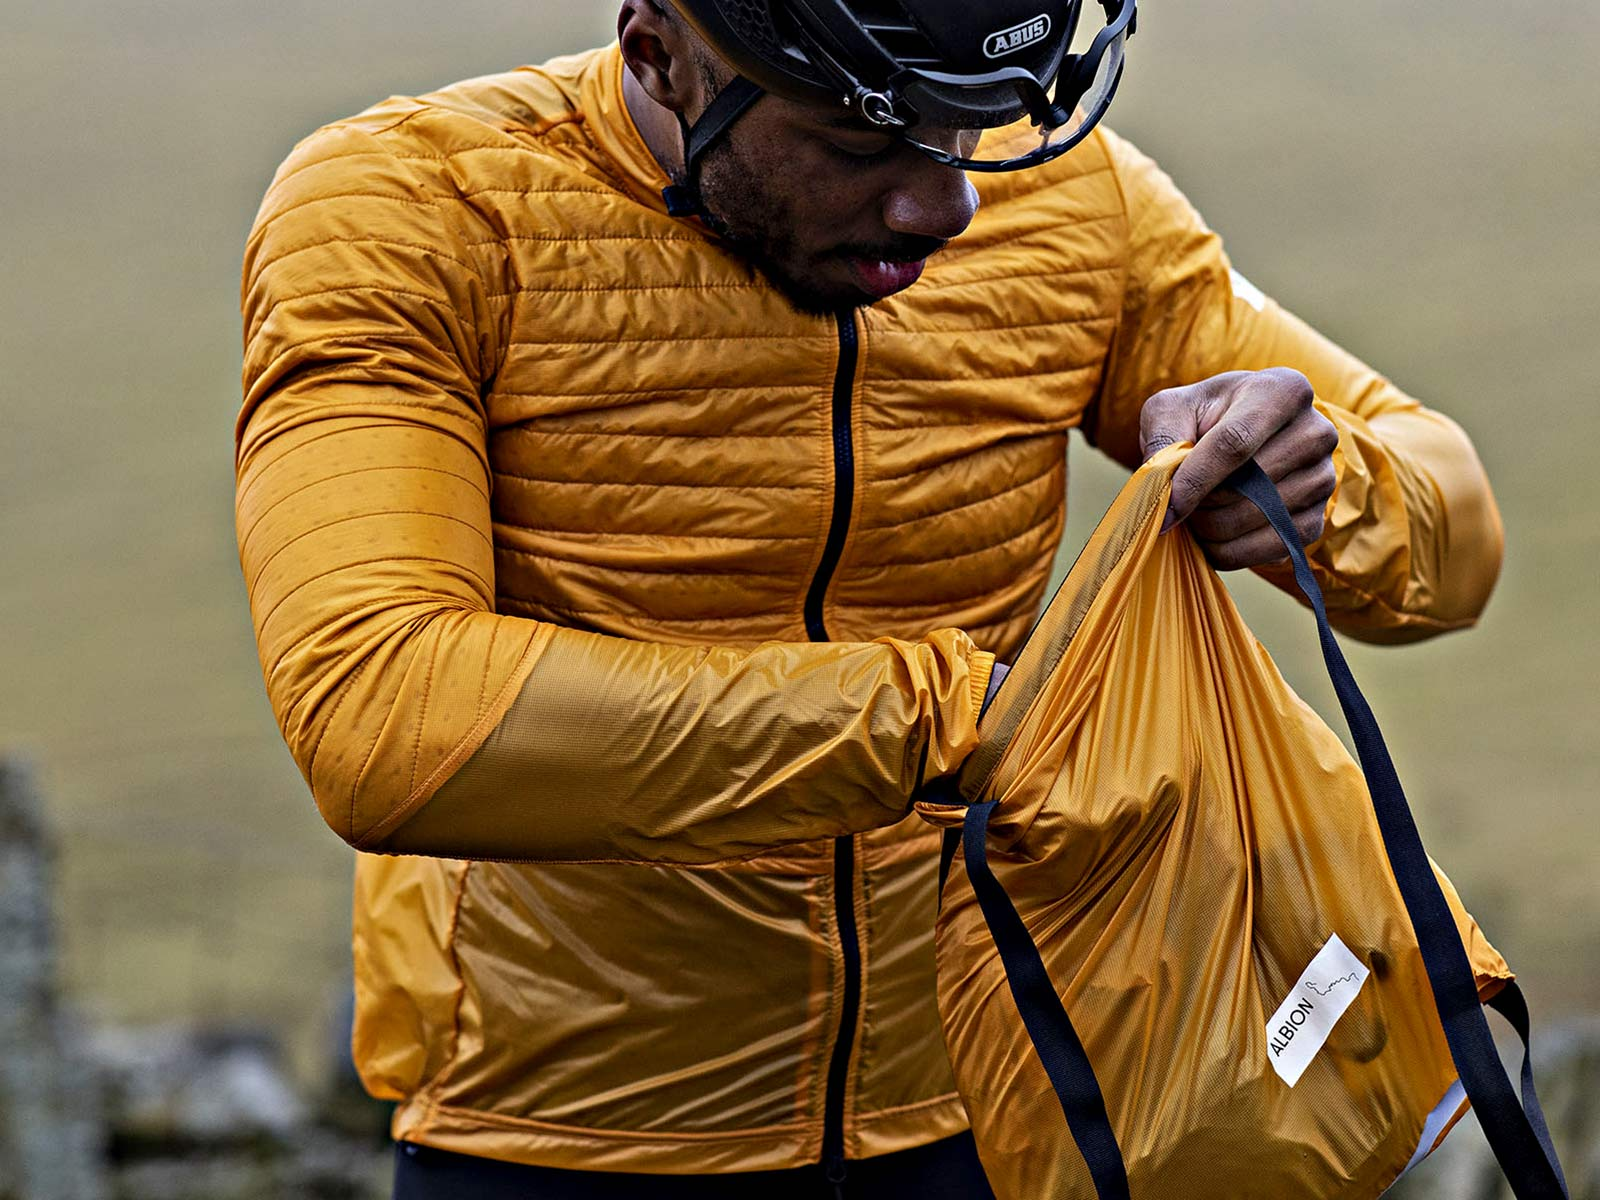 Albion Ultralight Insulated Jacket, ultra lightweight packable breathable eco cycling jacket and backpack, packing